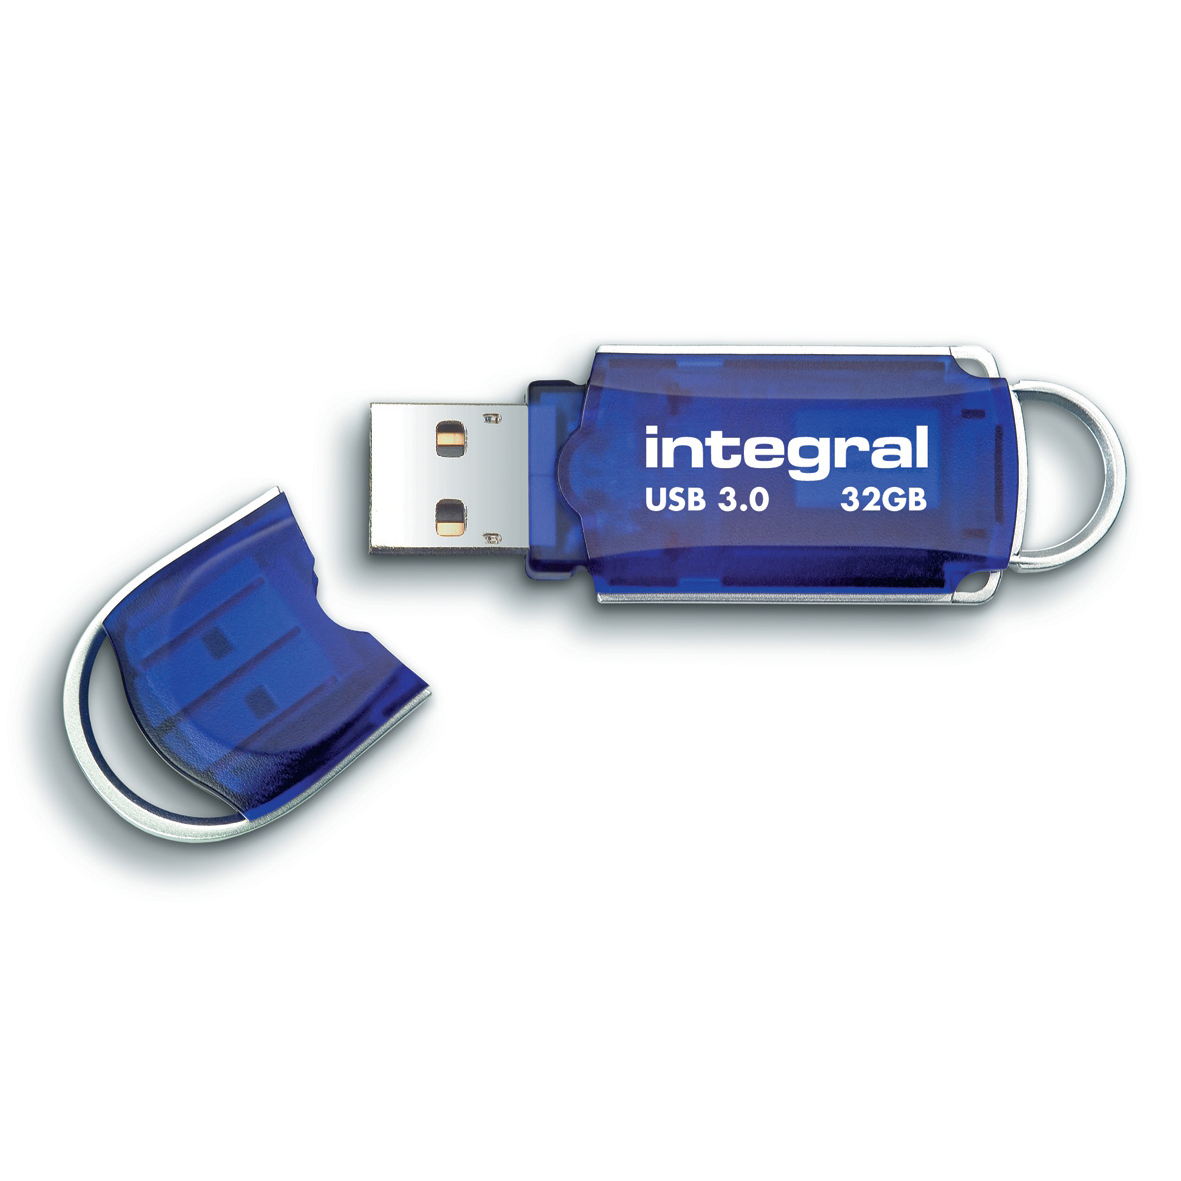 Memory Sticks Integral Courier Flash Drive USB 3.0 Blue 32GB Ref INFD32GBCOU3.0